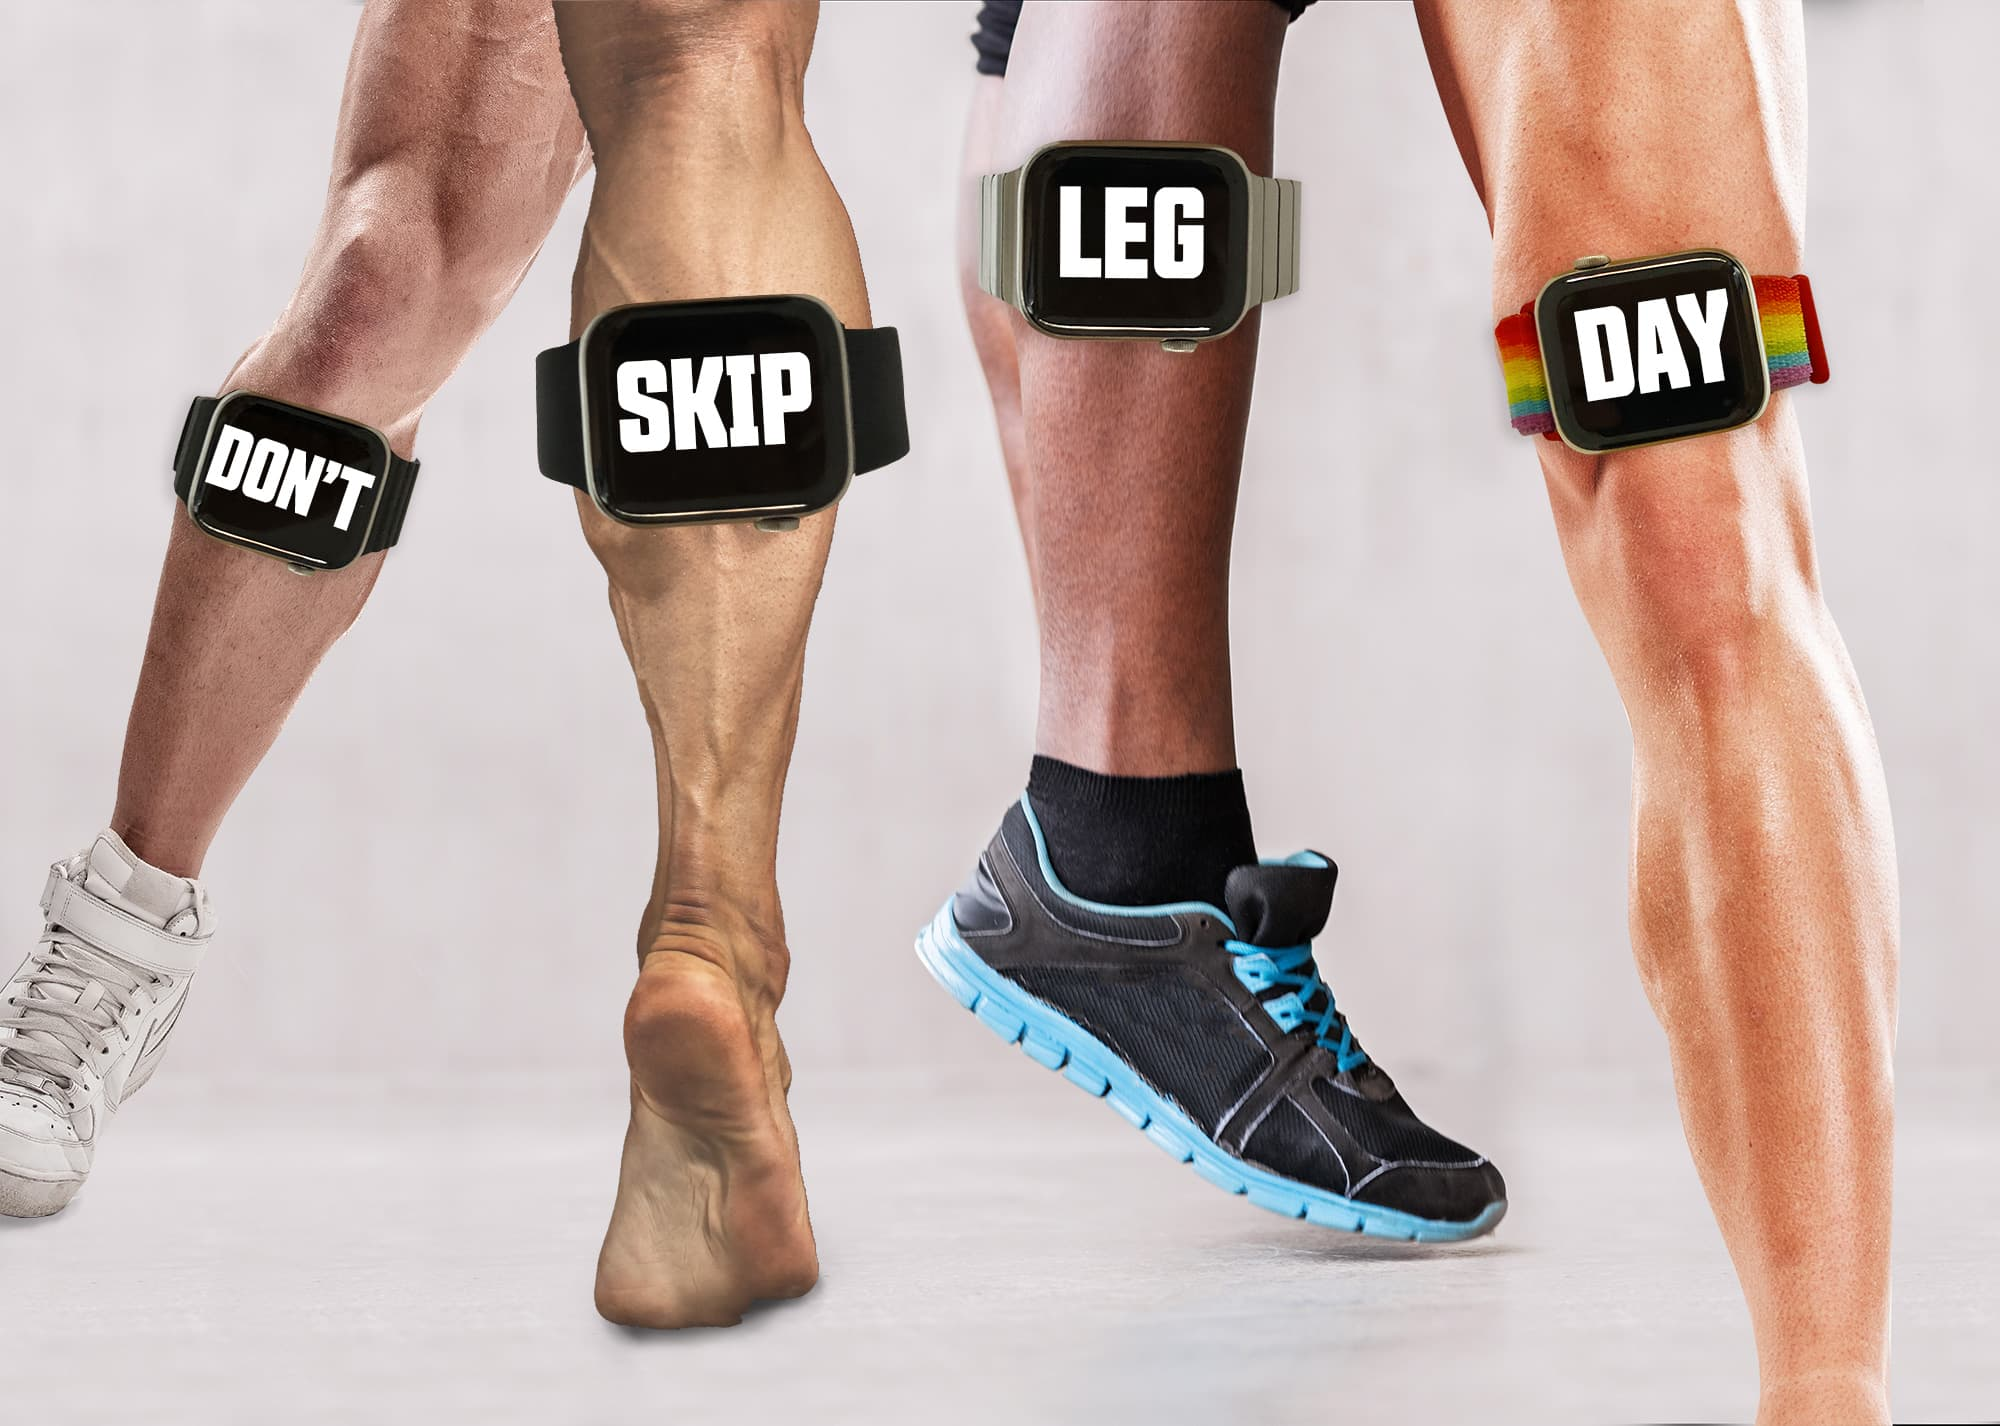 If you want to get in shape, definitely don't skip leg day